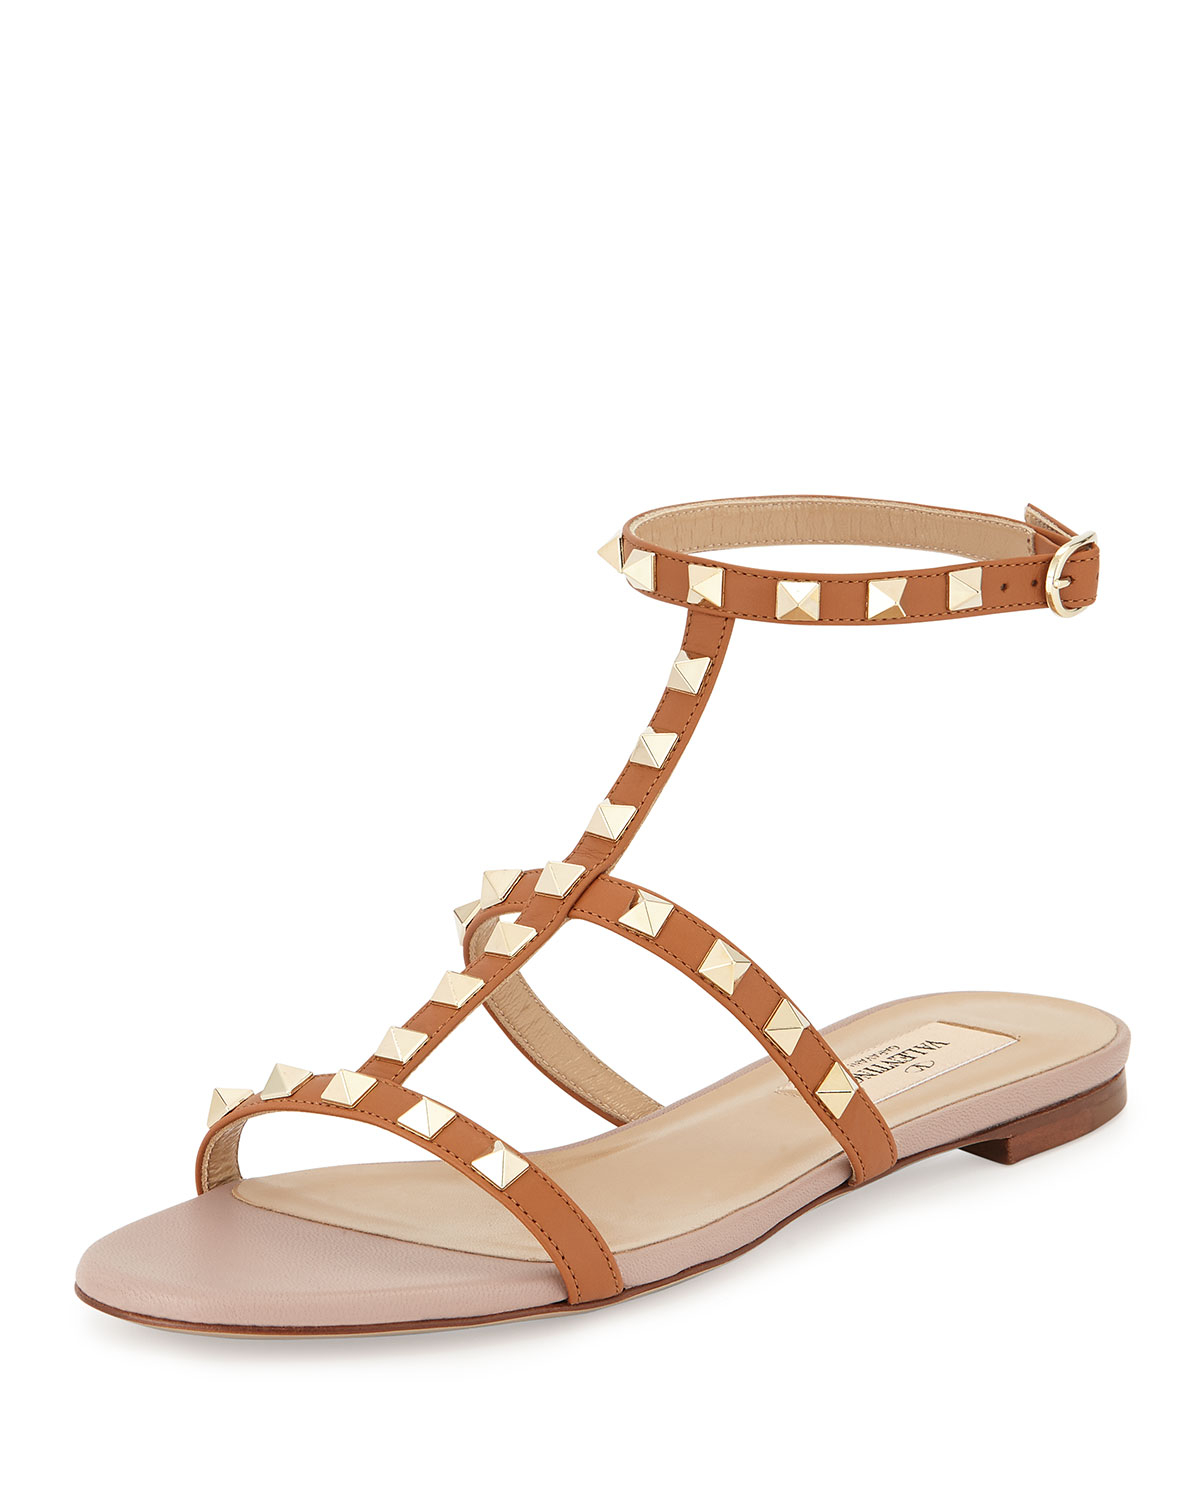 5eef9c827d81 Lyst - Valentino Rockstud Ankle-strap Flat Sandal in Natural